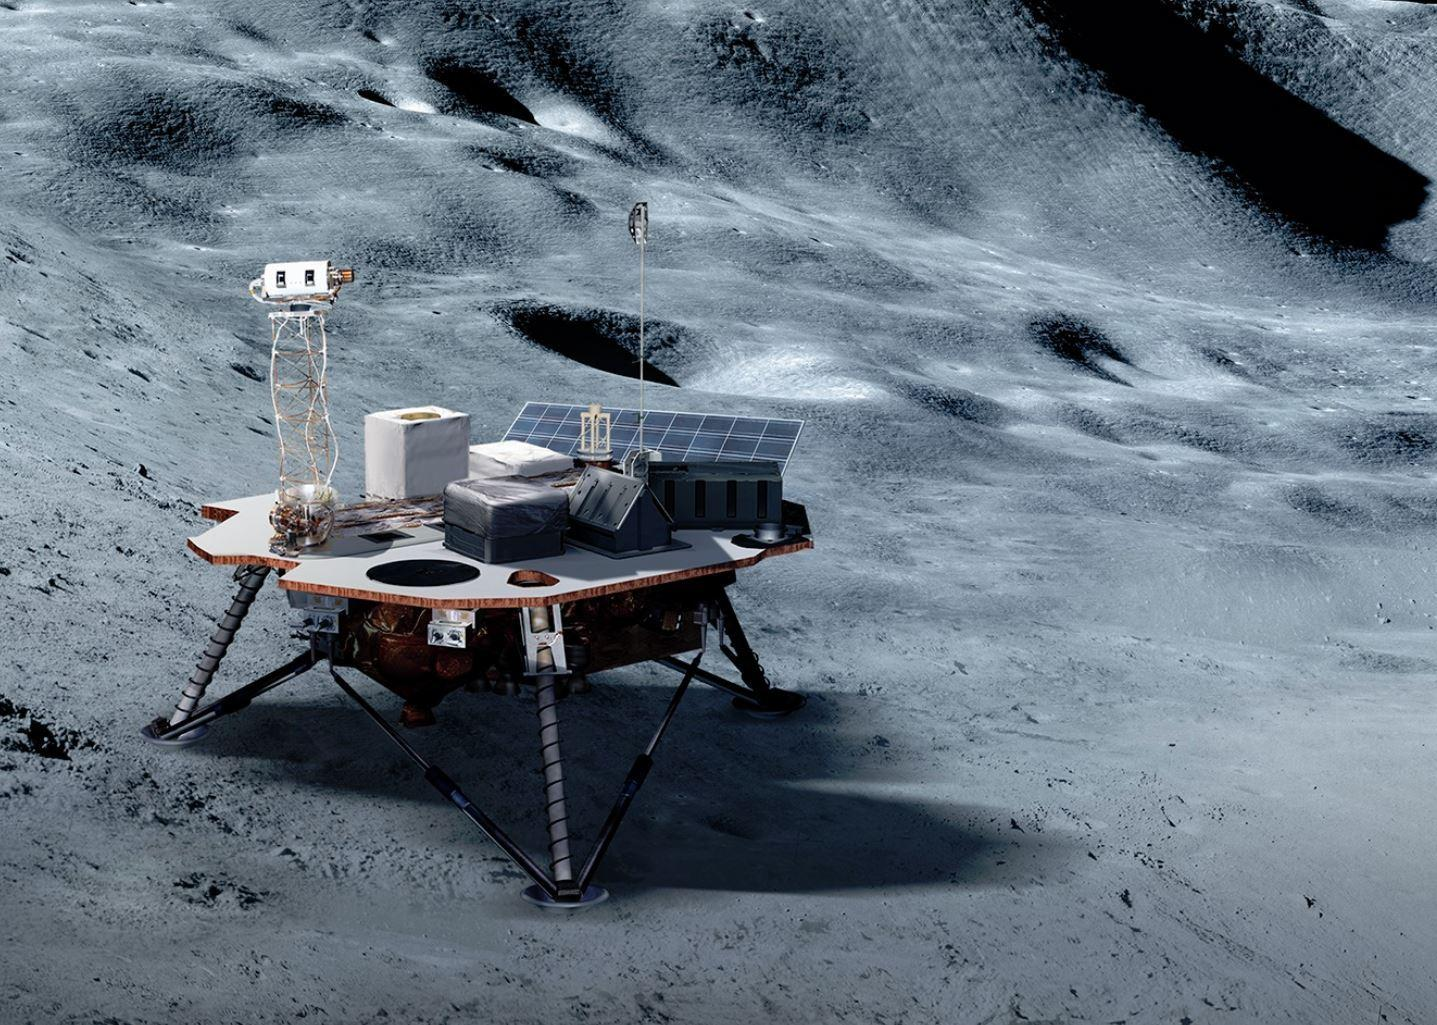 nasa commercial lunar payload services - HD1437×1025